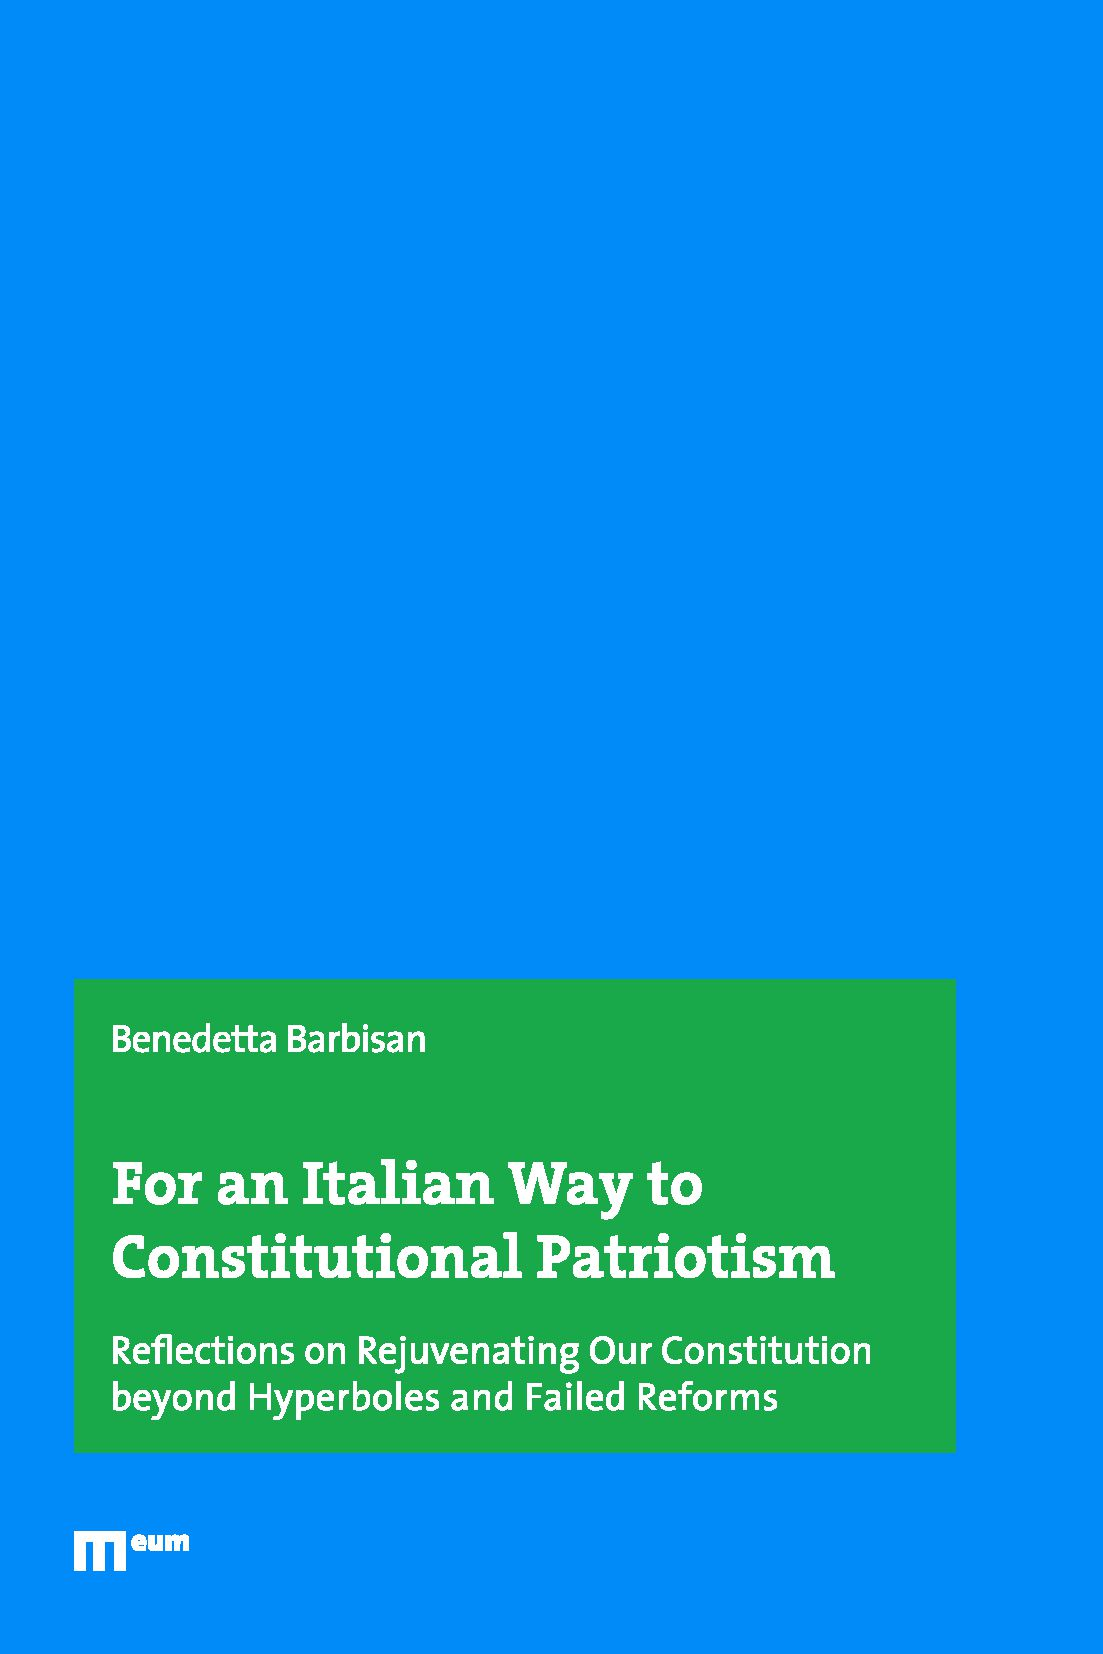 For an Italian Way to Constitutional Patriotism